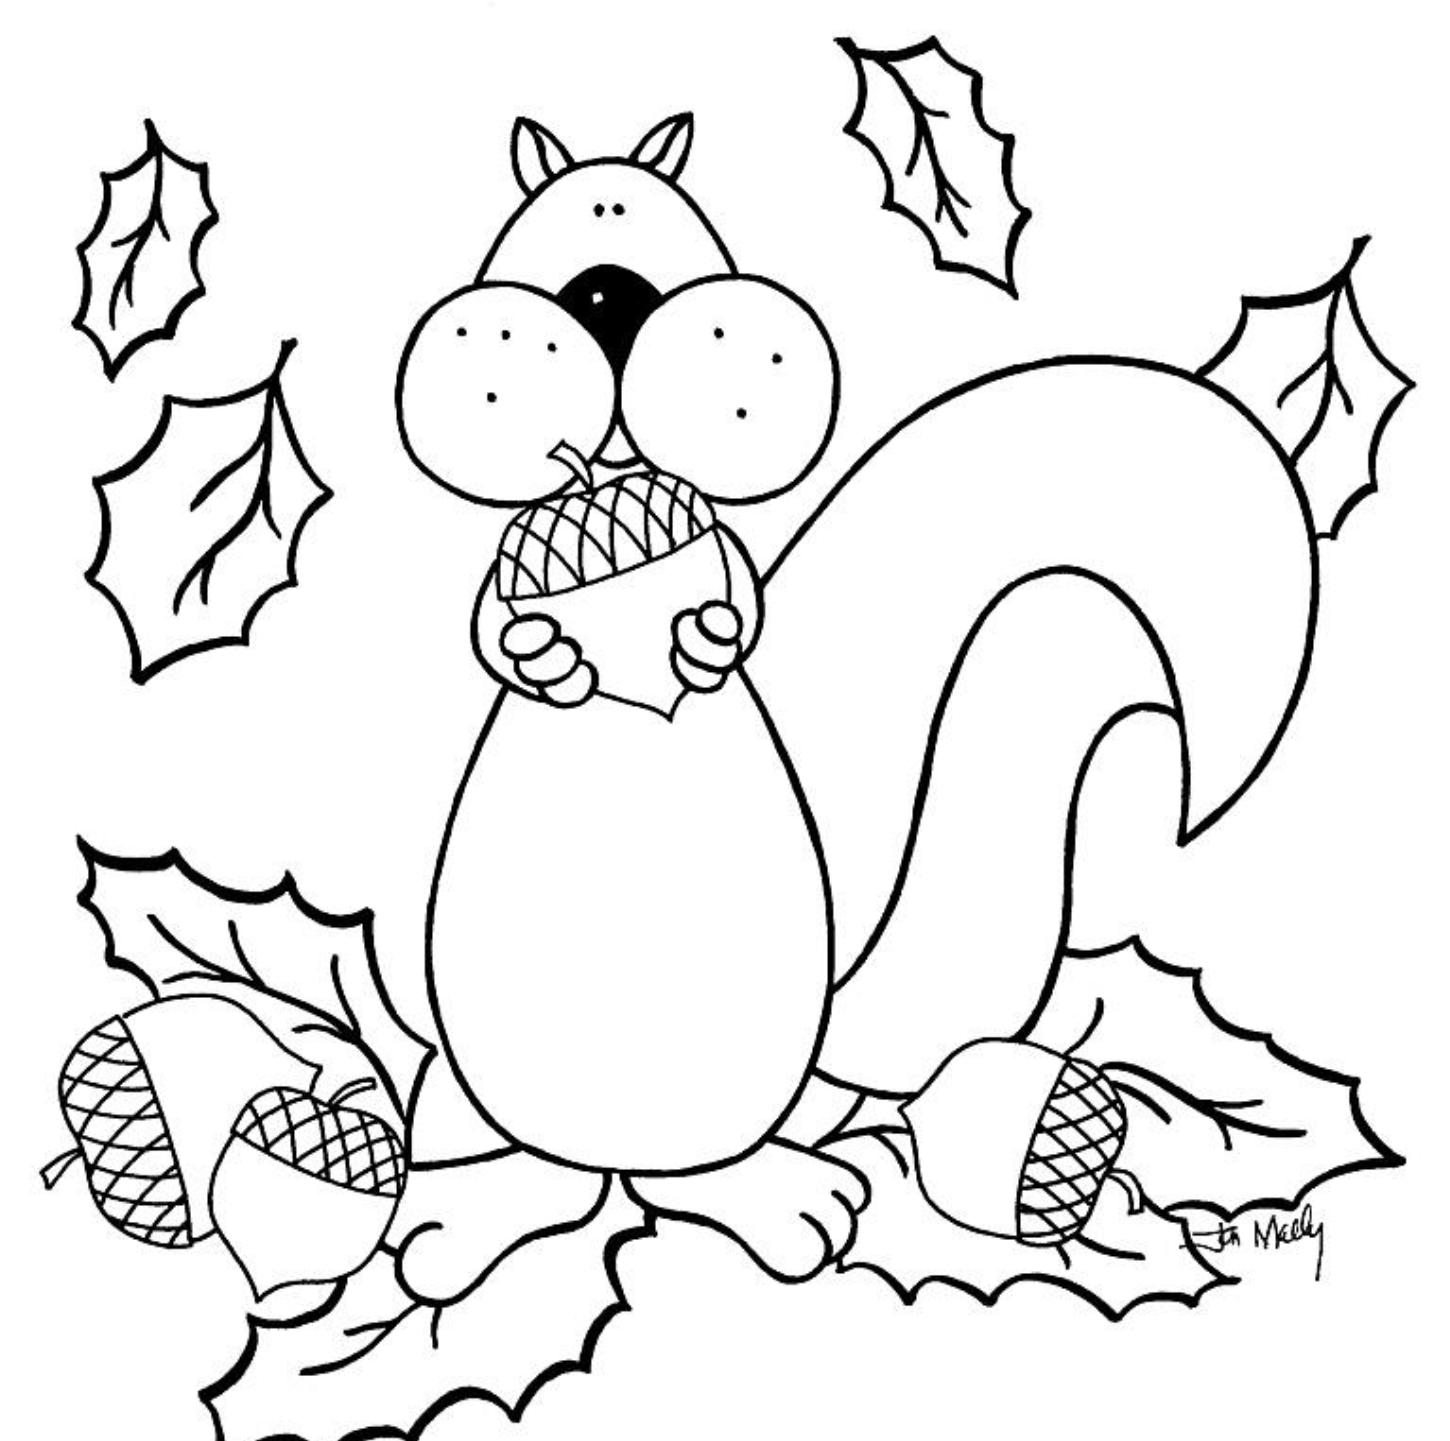 1450x1441 Squirrel Coloring Page Pages Autumn Ribsvigyapan Squirrel Squirrel